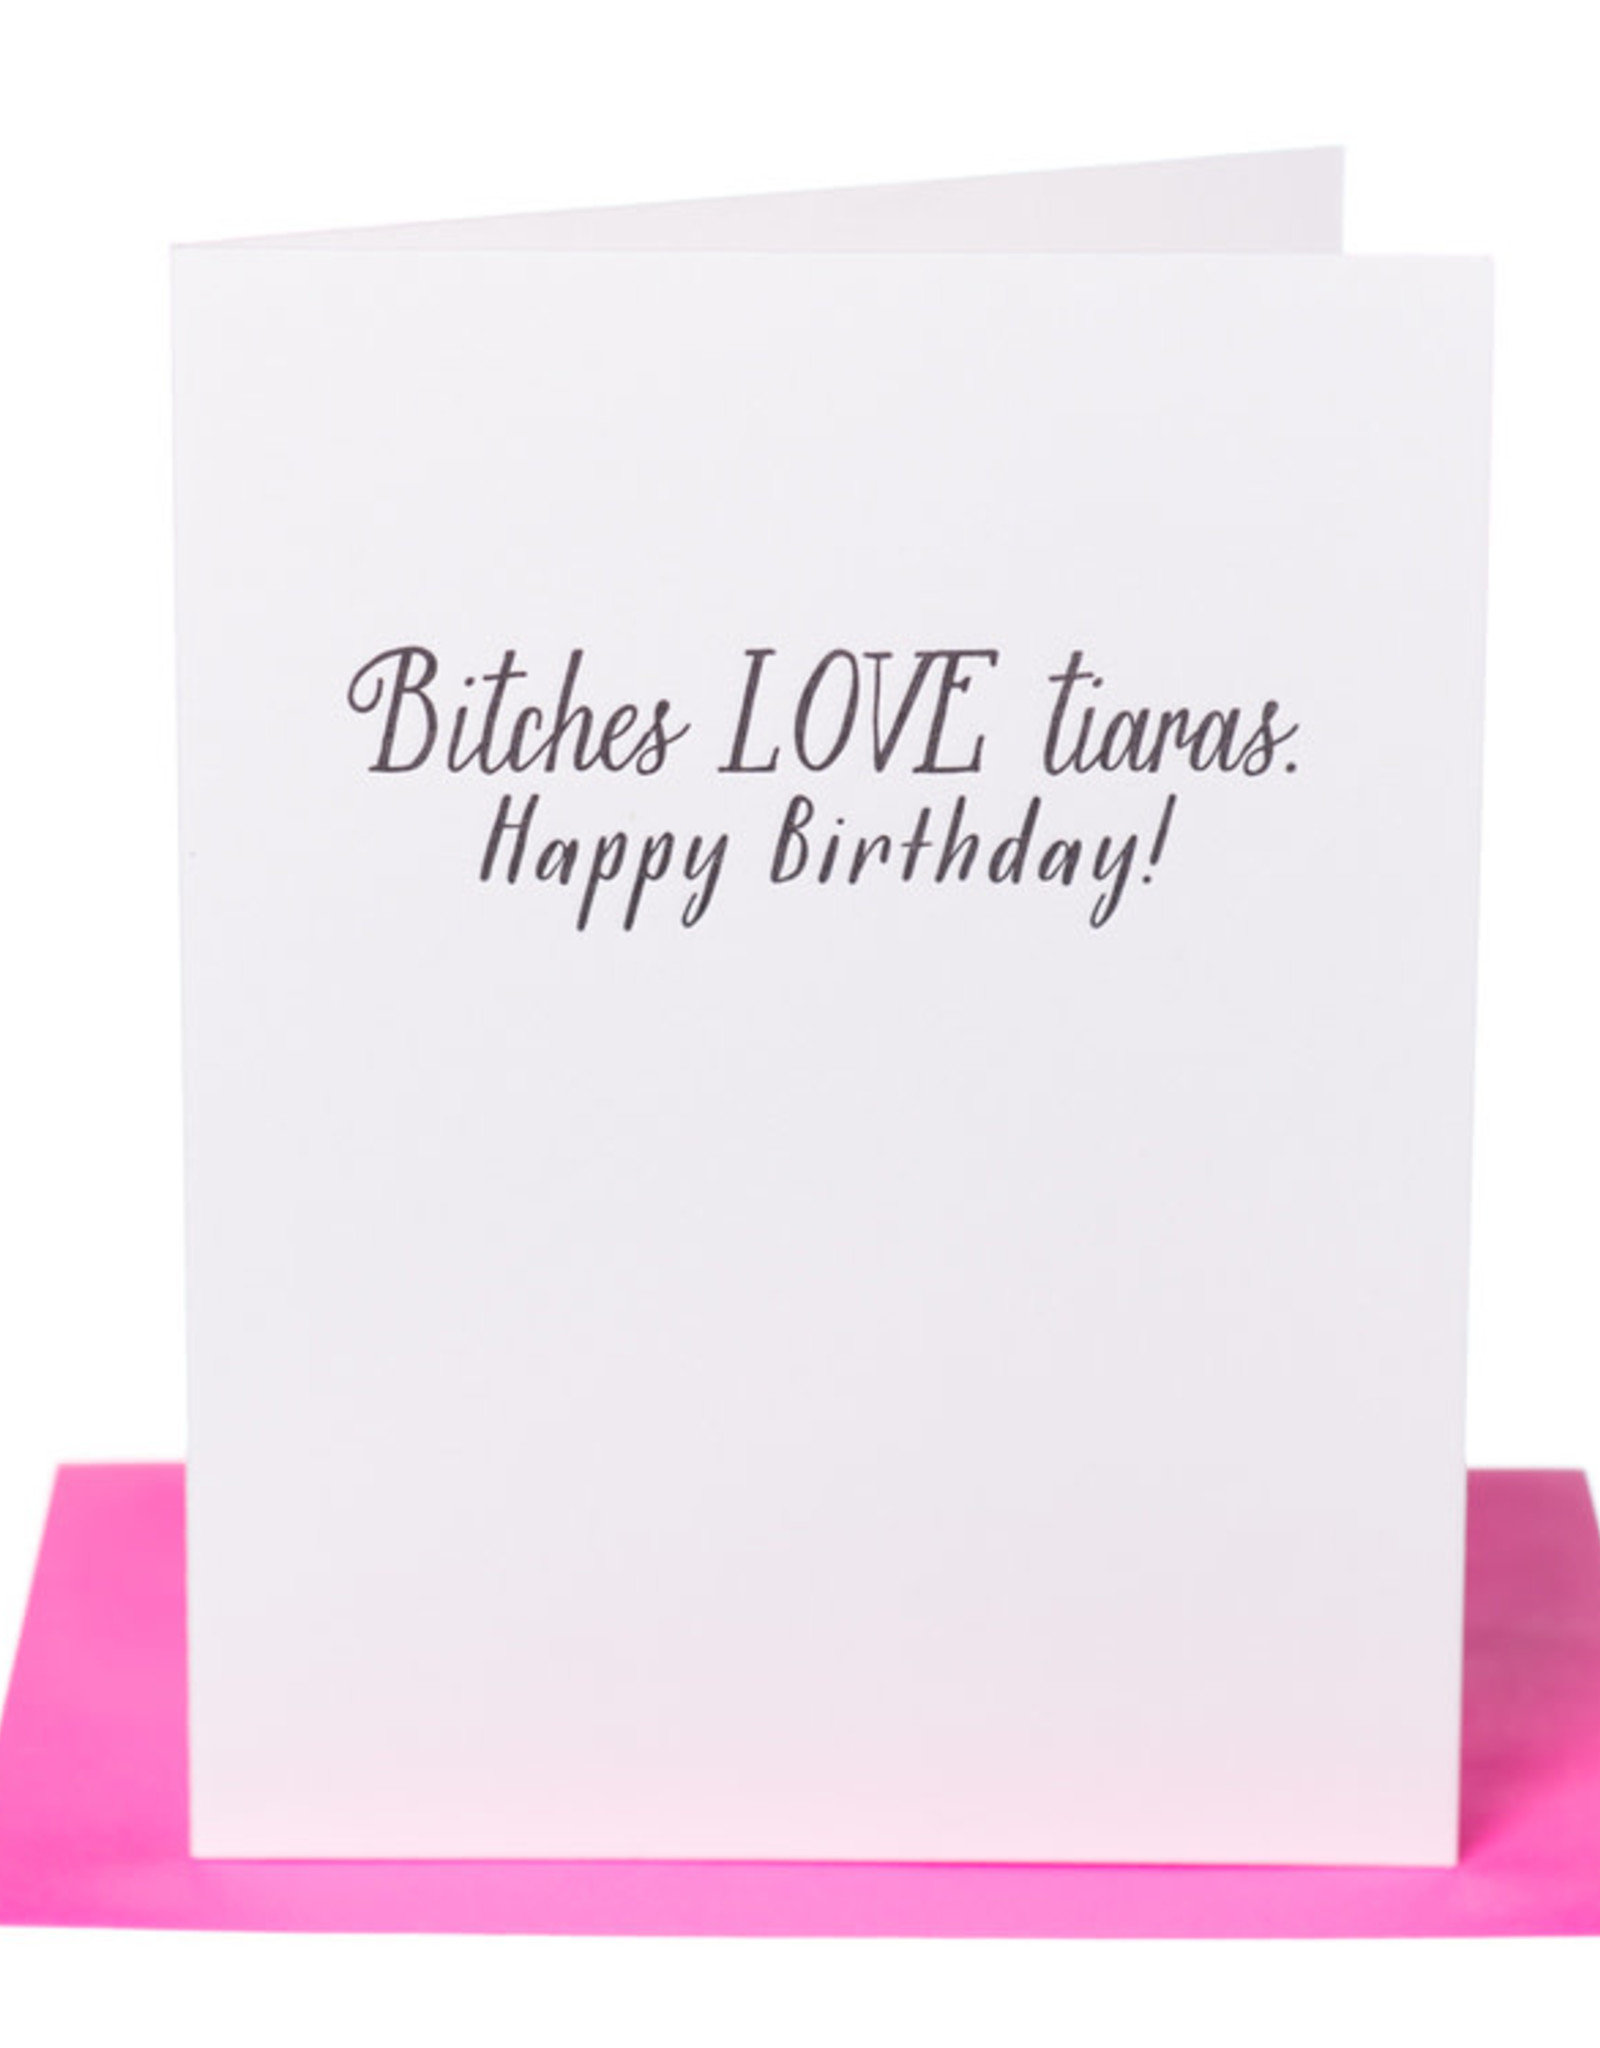 Pa-Epi Bitches LOVE Tiaras Card